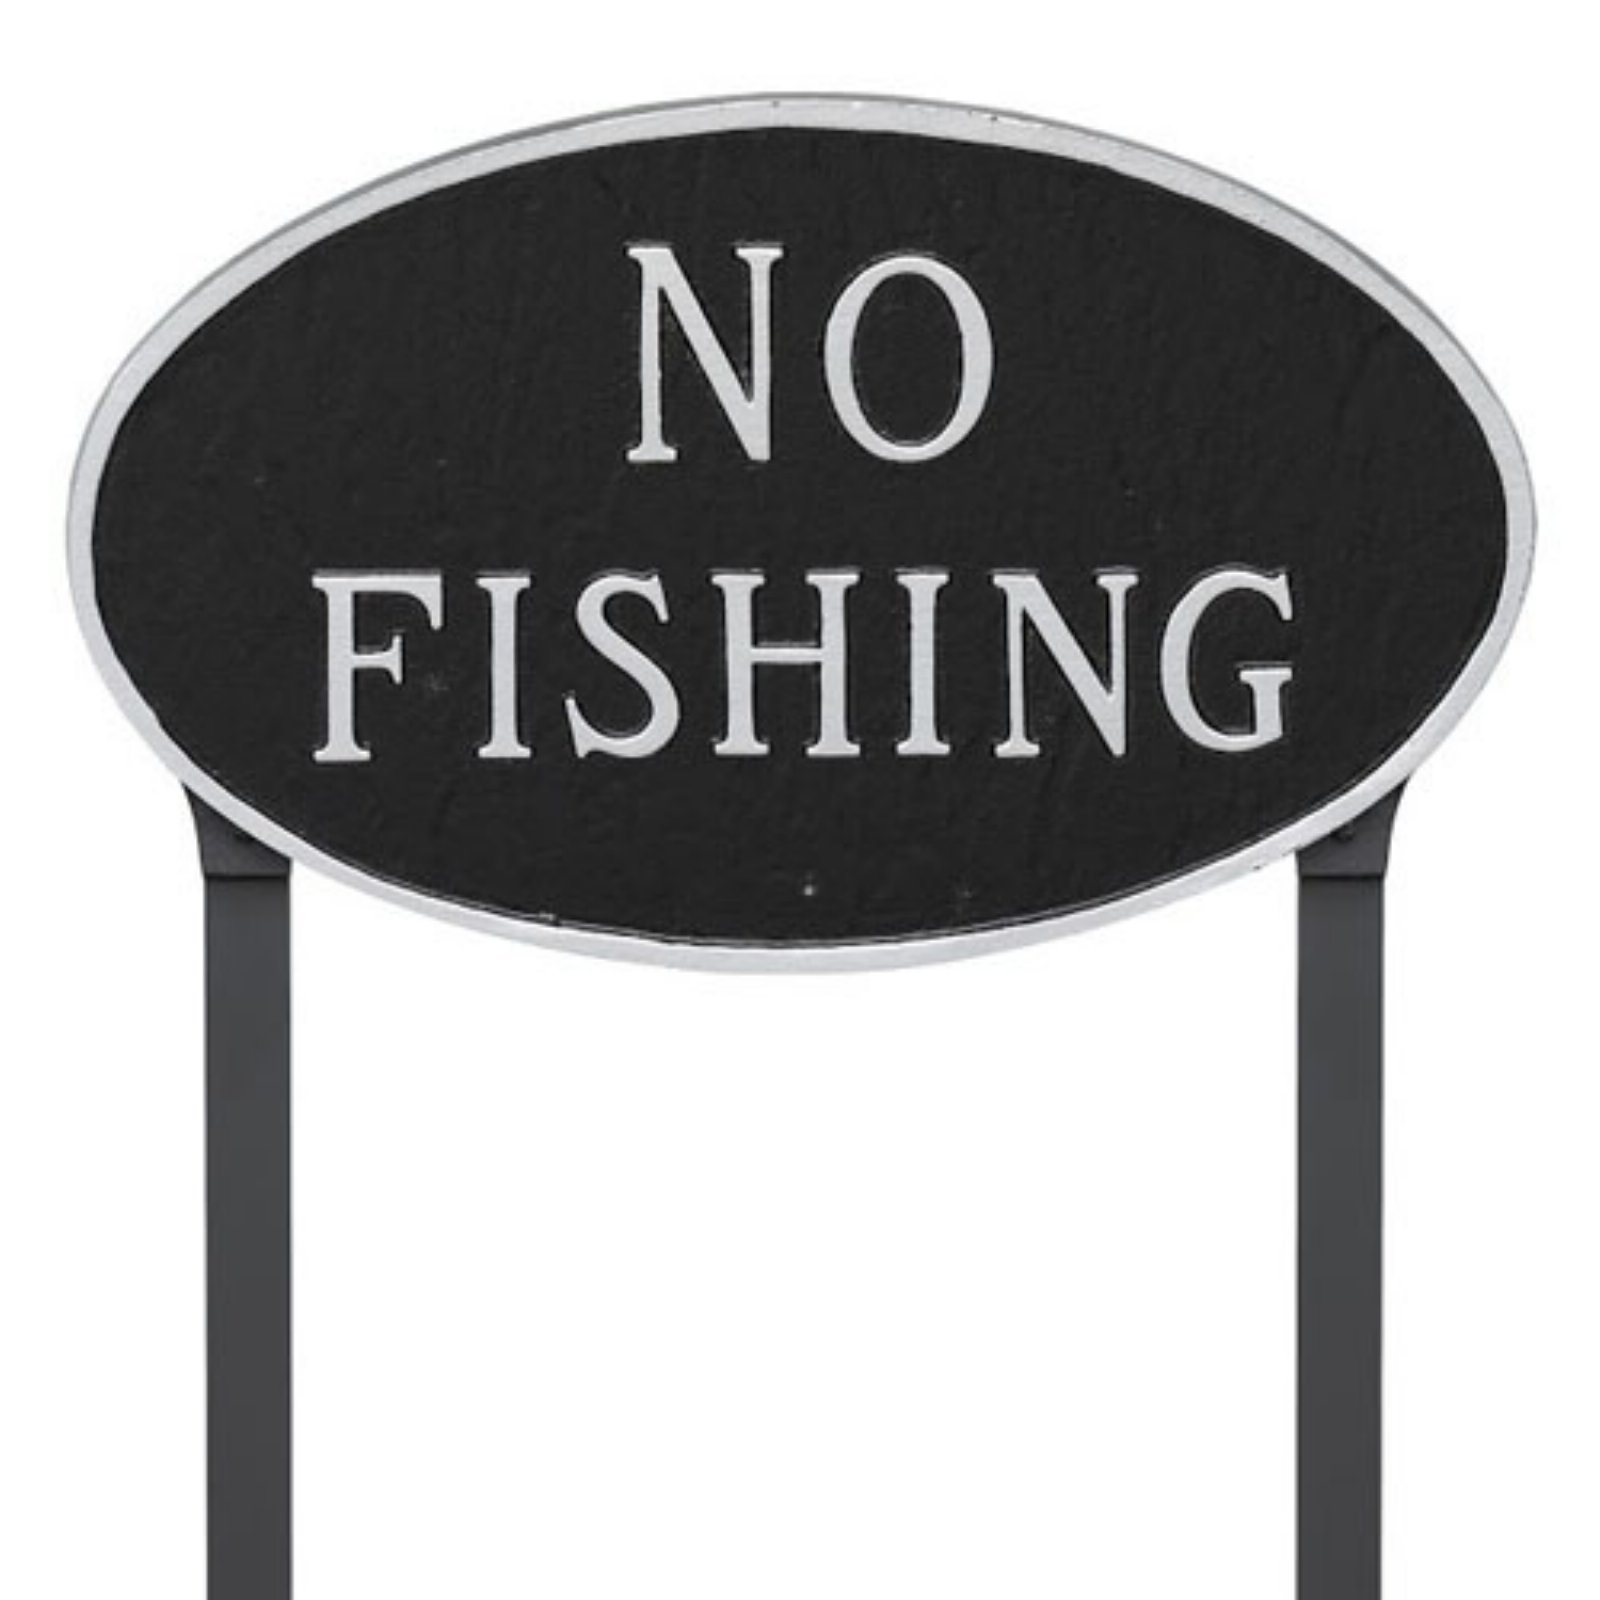 Montague Metal Products No Fishing Oval Lawn Plaque by